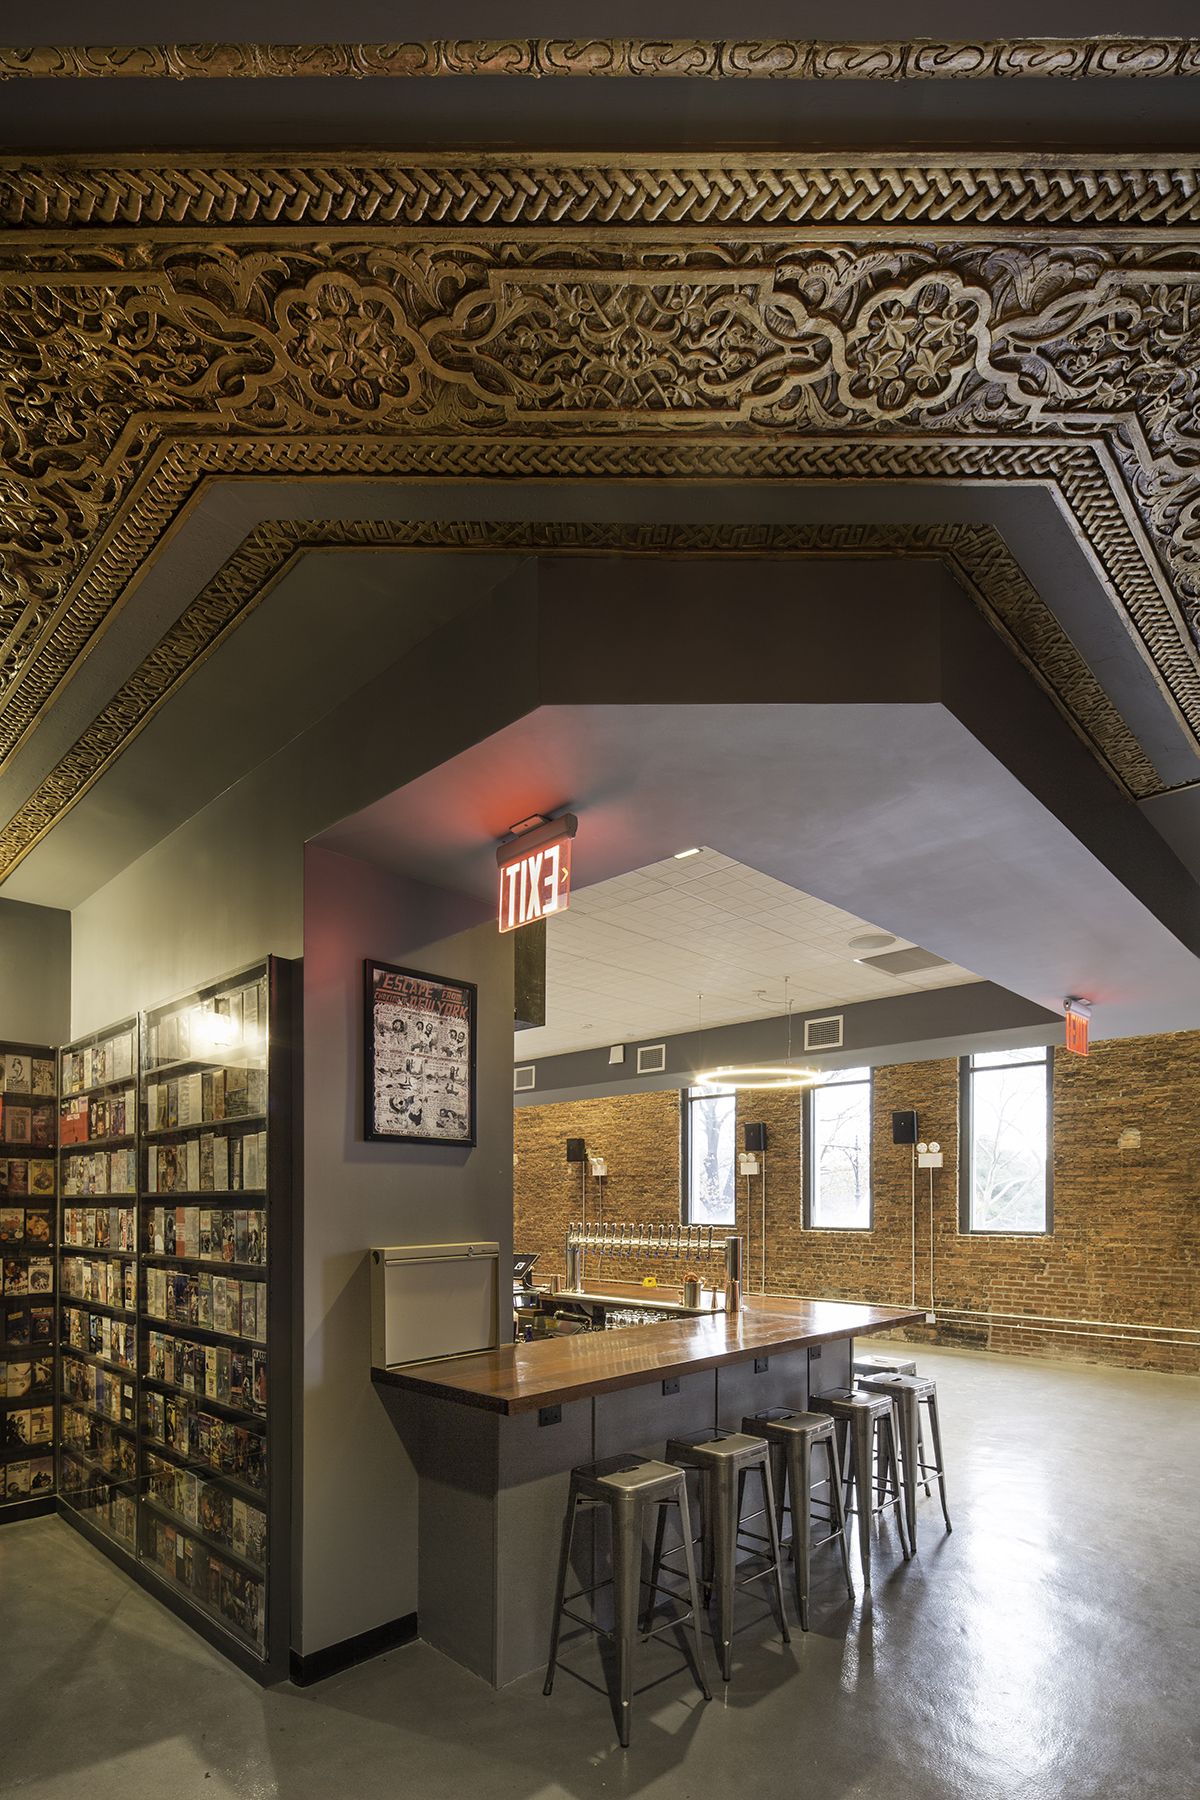 The bar and interior architecture of the Nitehawk Cinema at 188 Prospect Park West in Brooklyn with MEP-FP engineering services provided by 2L Engineering.